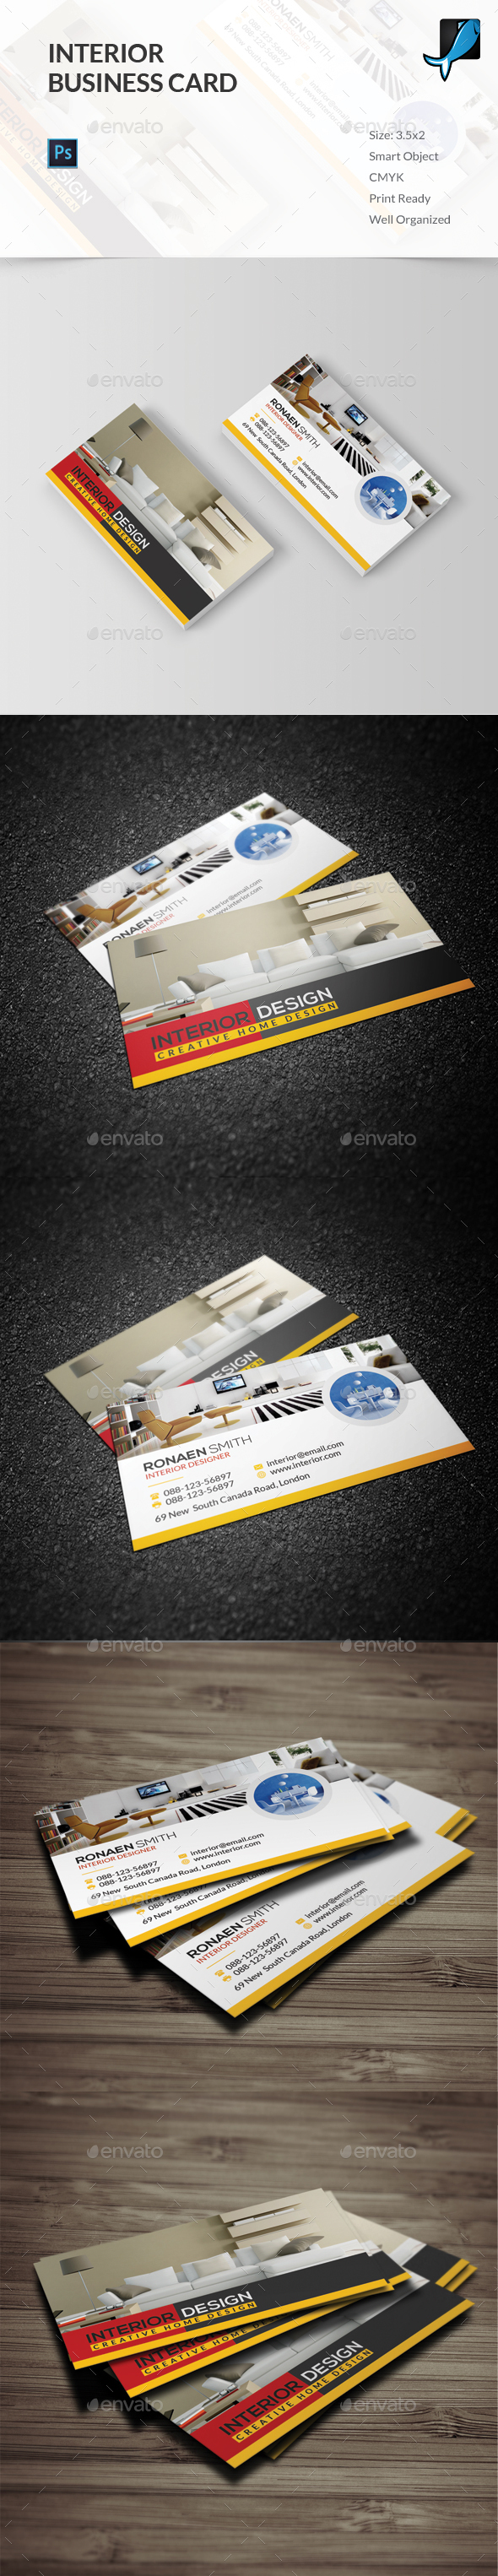 Interior Business Card - Industry Specific Business Cards